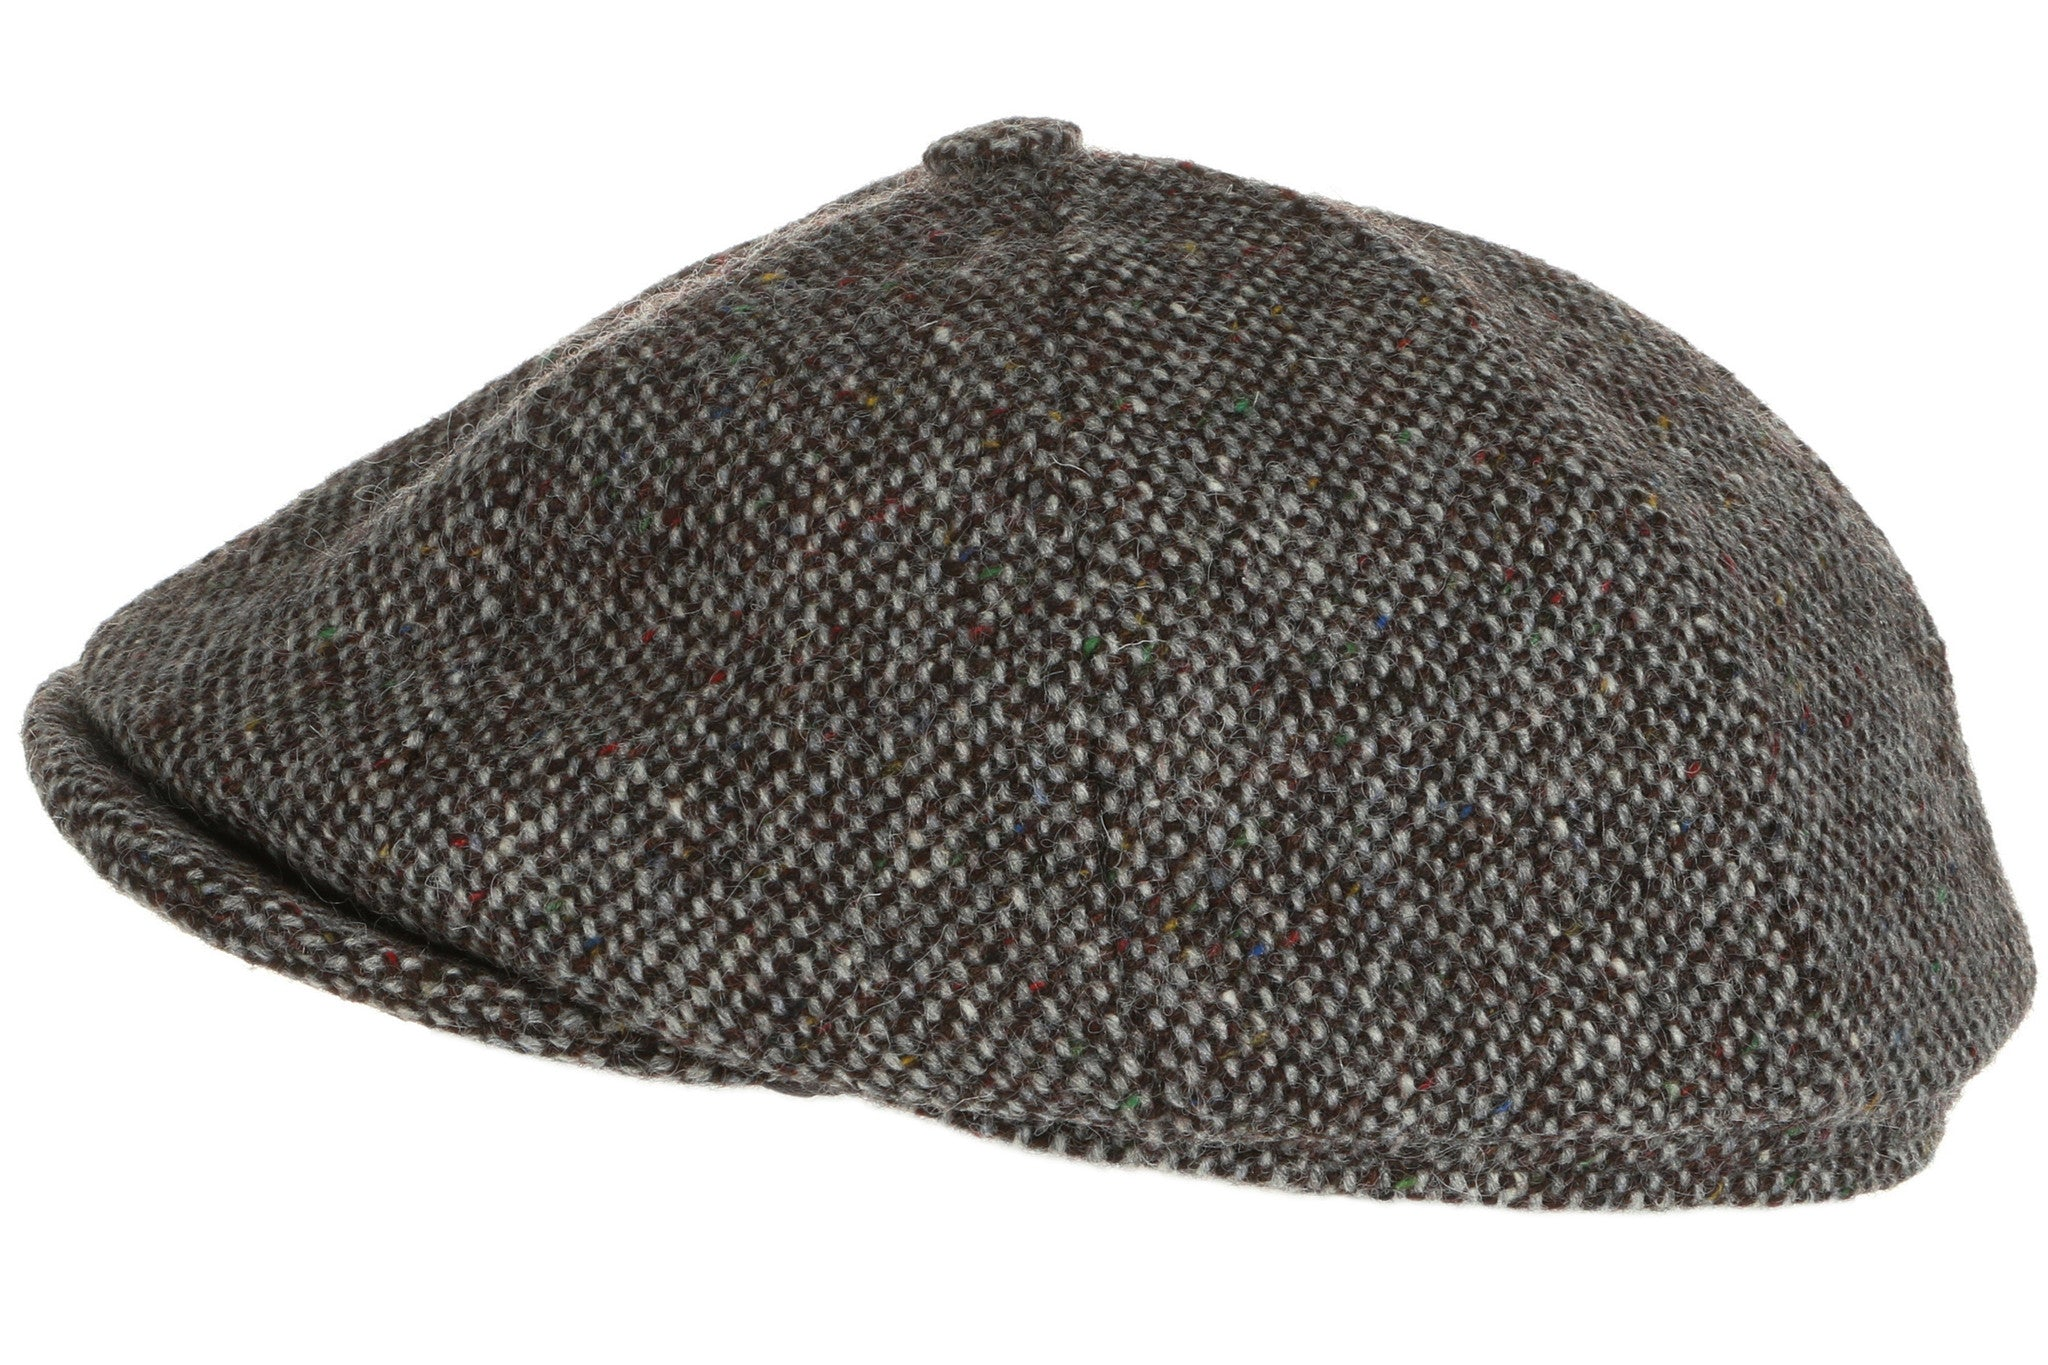 ... Hanna Hats Newsboy Cap Tweed Grey Salt-n-Pepper ... f8bc27acb1b